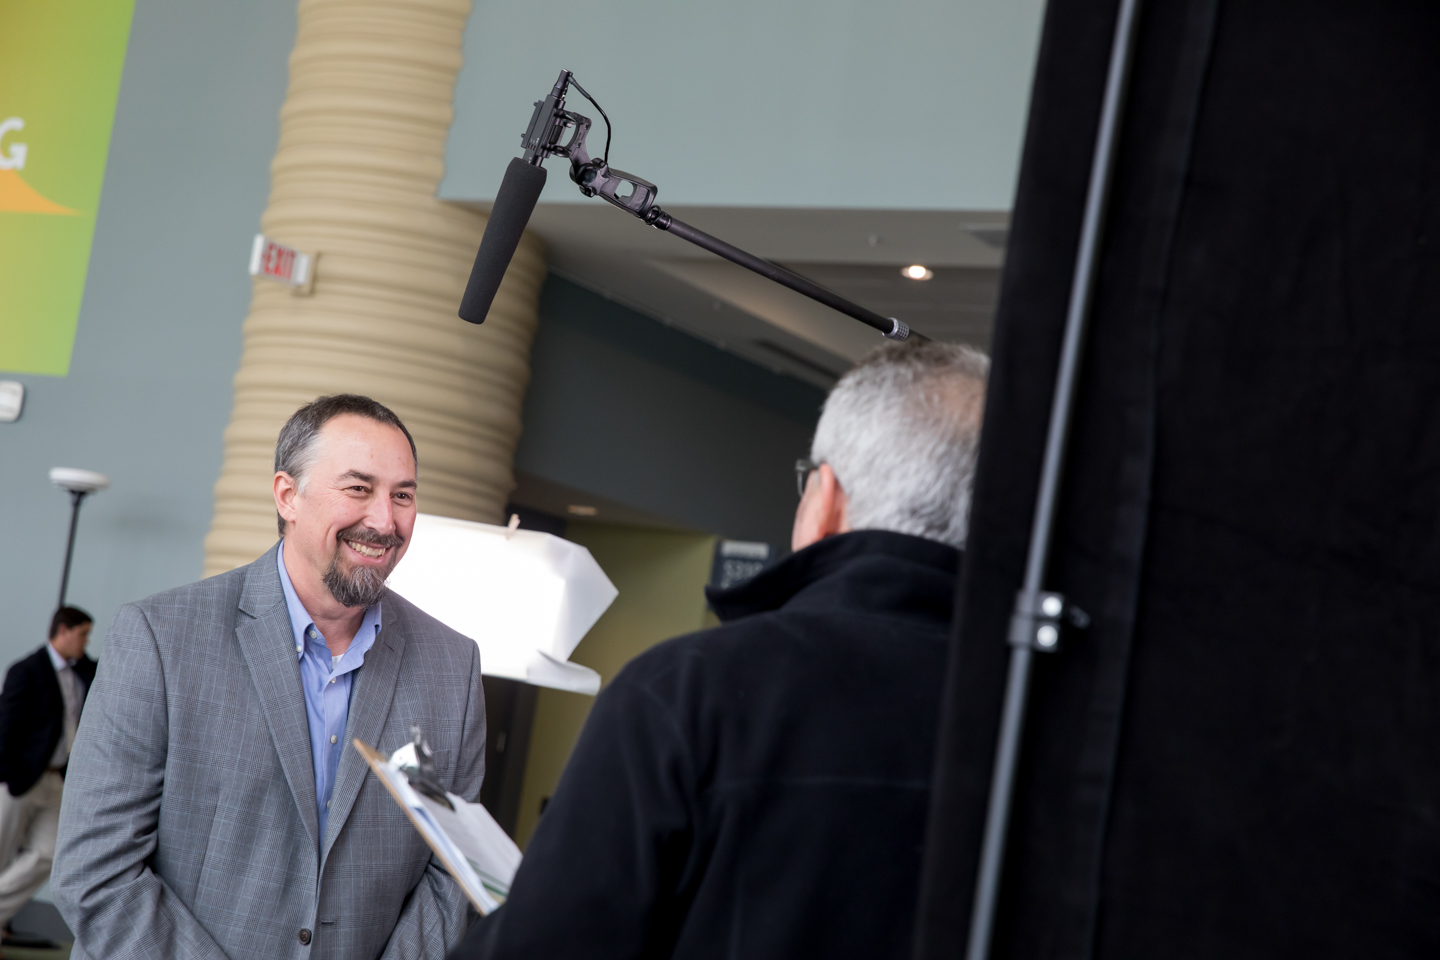 00-184-orlando-photographer-professional-expo-event-tradeshow-orange-county-convention-center-behind-the-scenes-interview-production.jpg